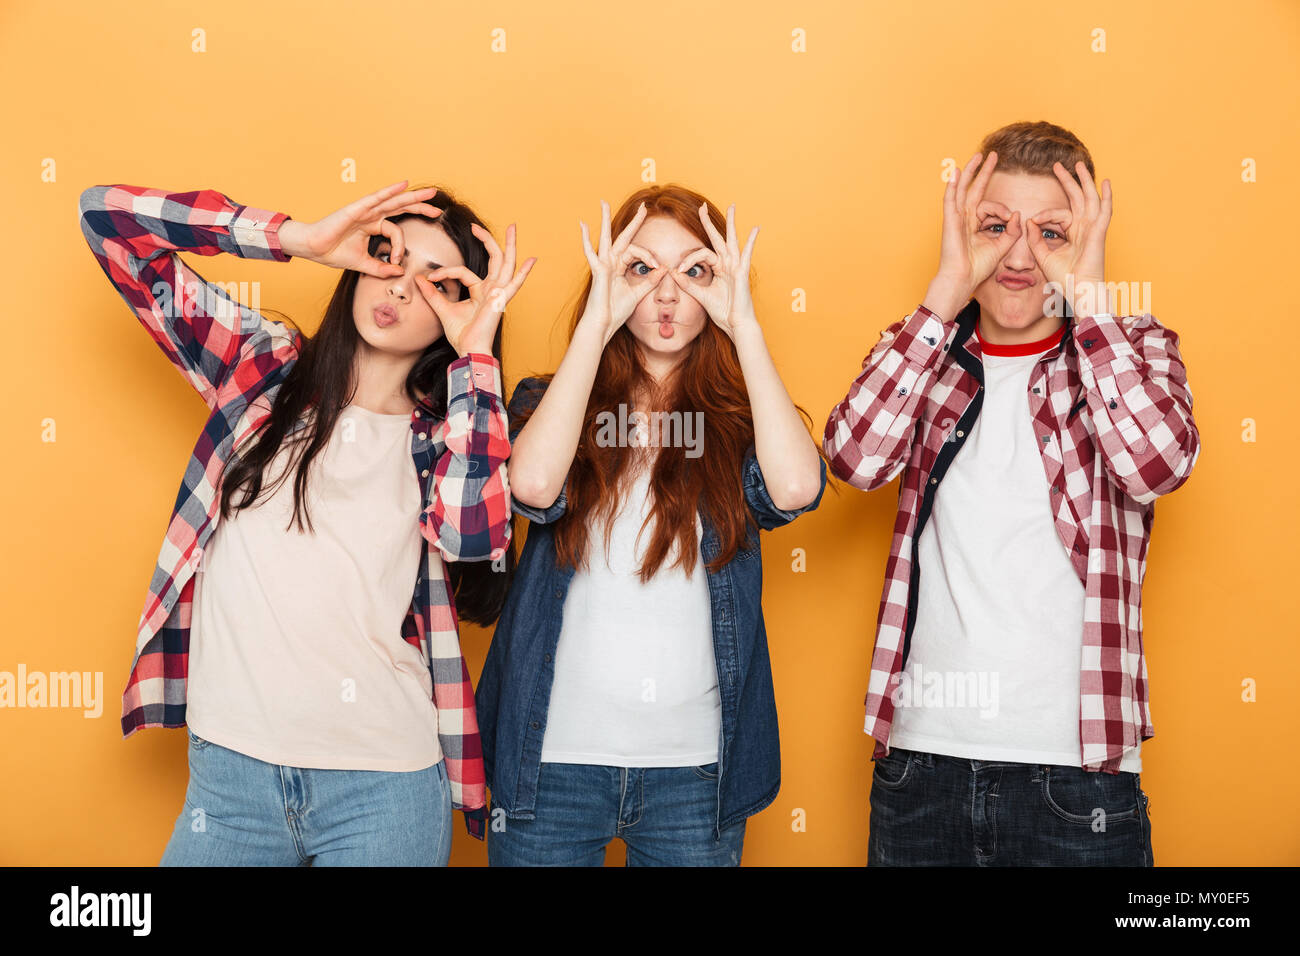 Group of happy school friends grimacing and having fun while standing together over yellow background - Stock Image